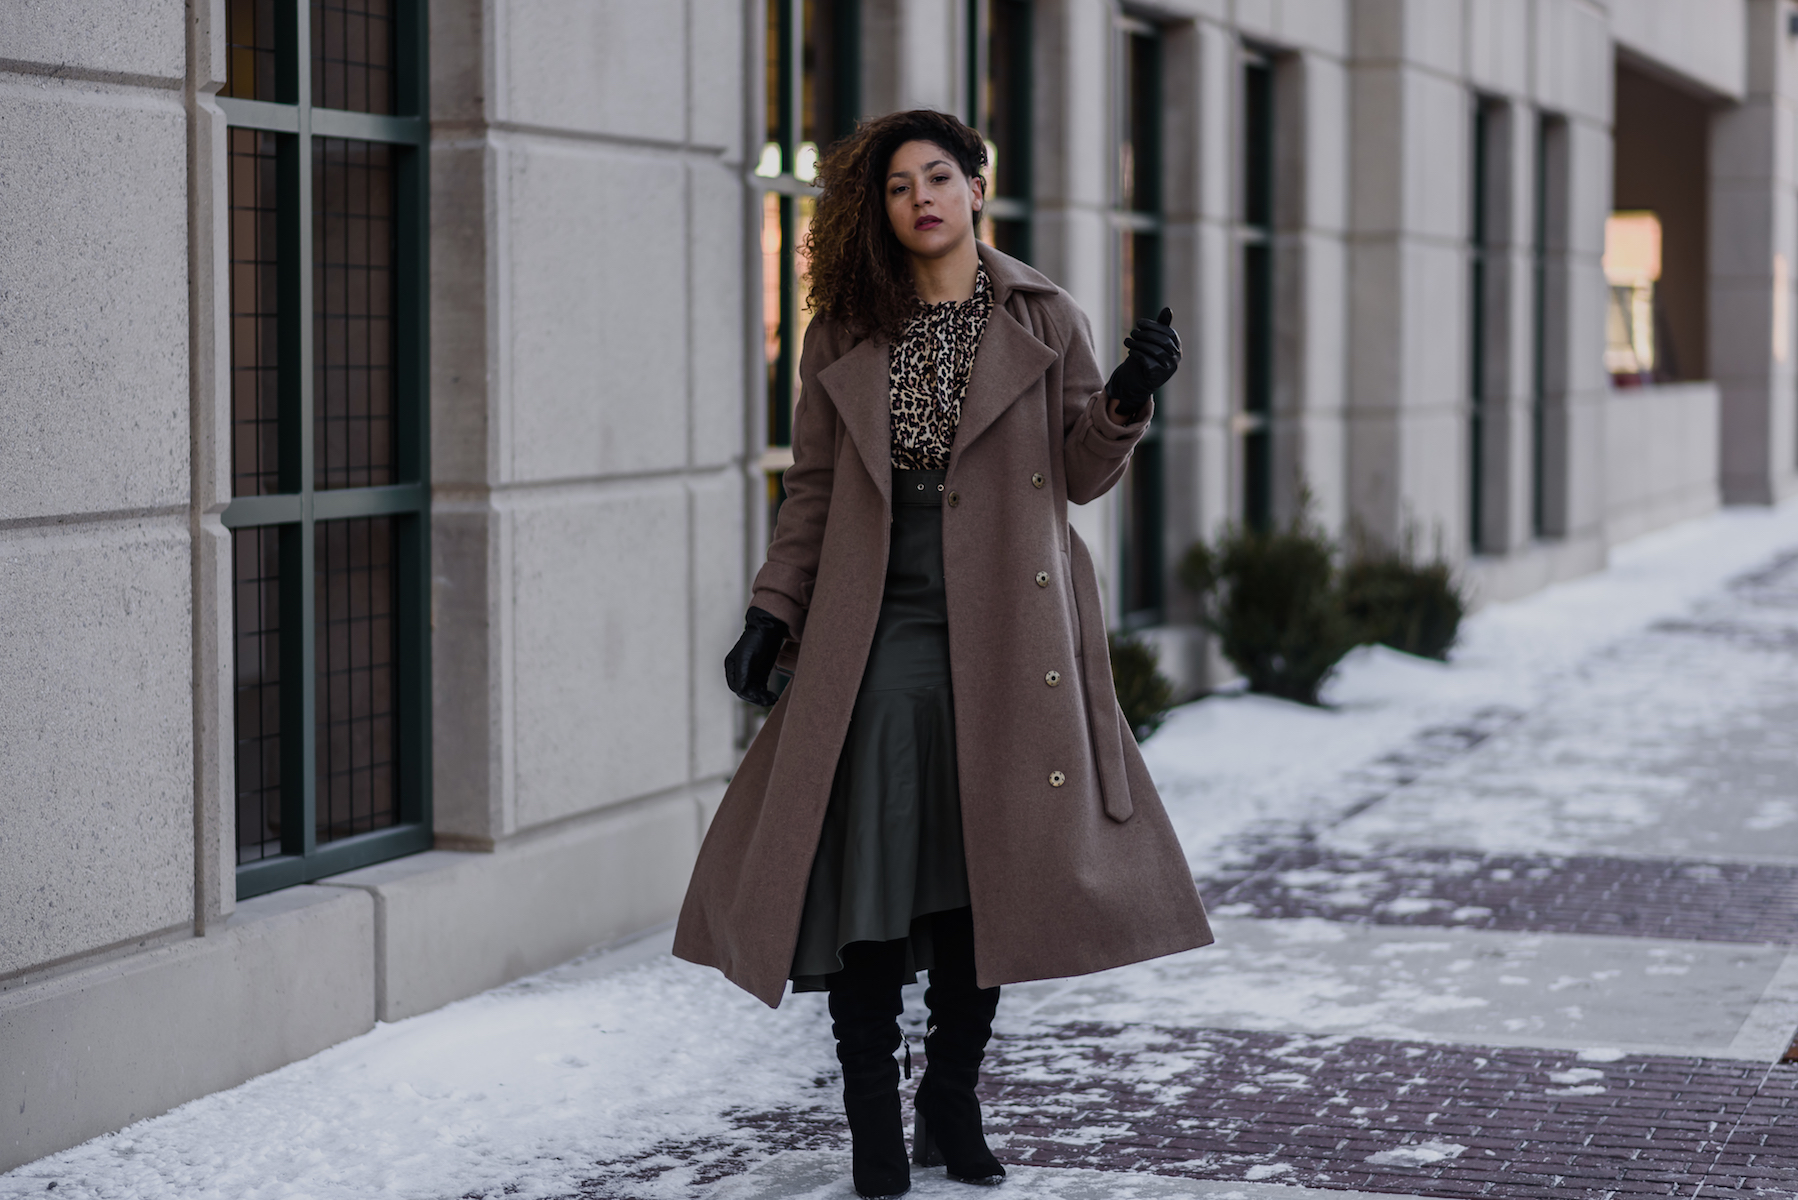 Guide on How to Wear a Leather Midi Skirt|Detroit Fashion Blog: chic winter outfit for young women, topshop leather midi skirt for women, winter fashion for women